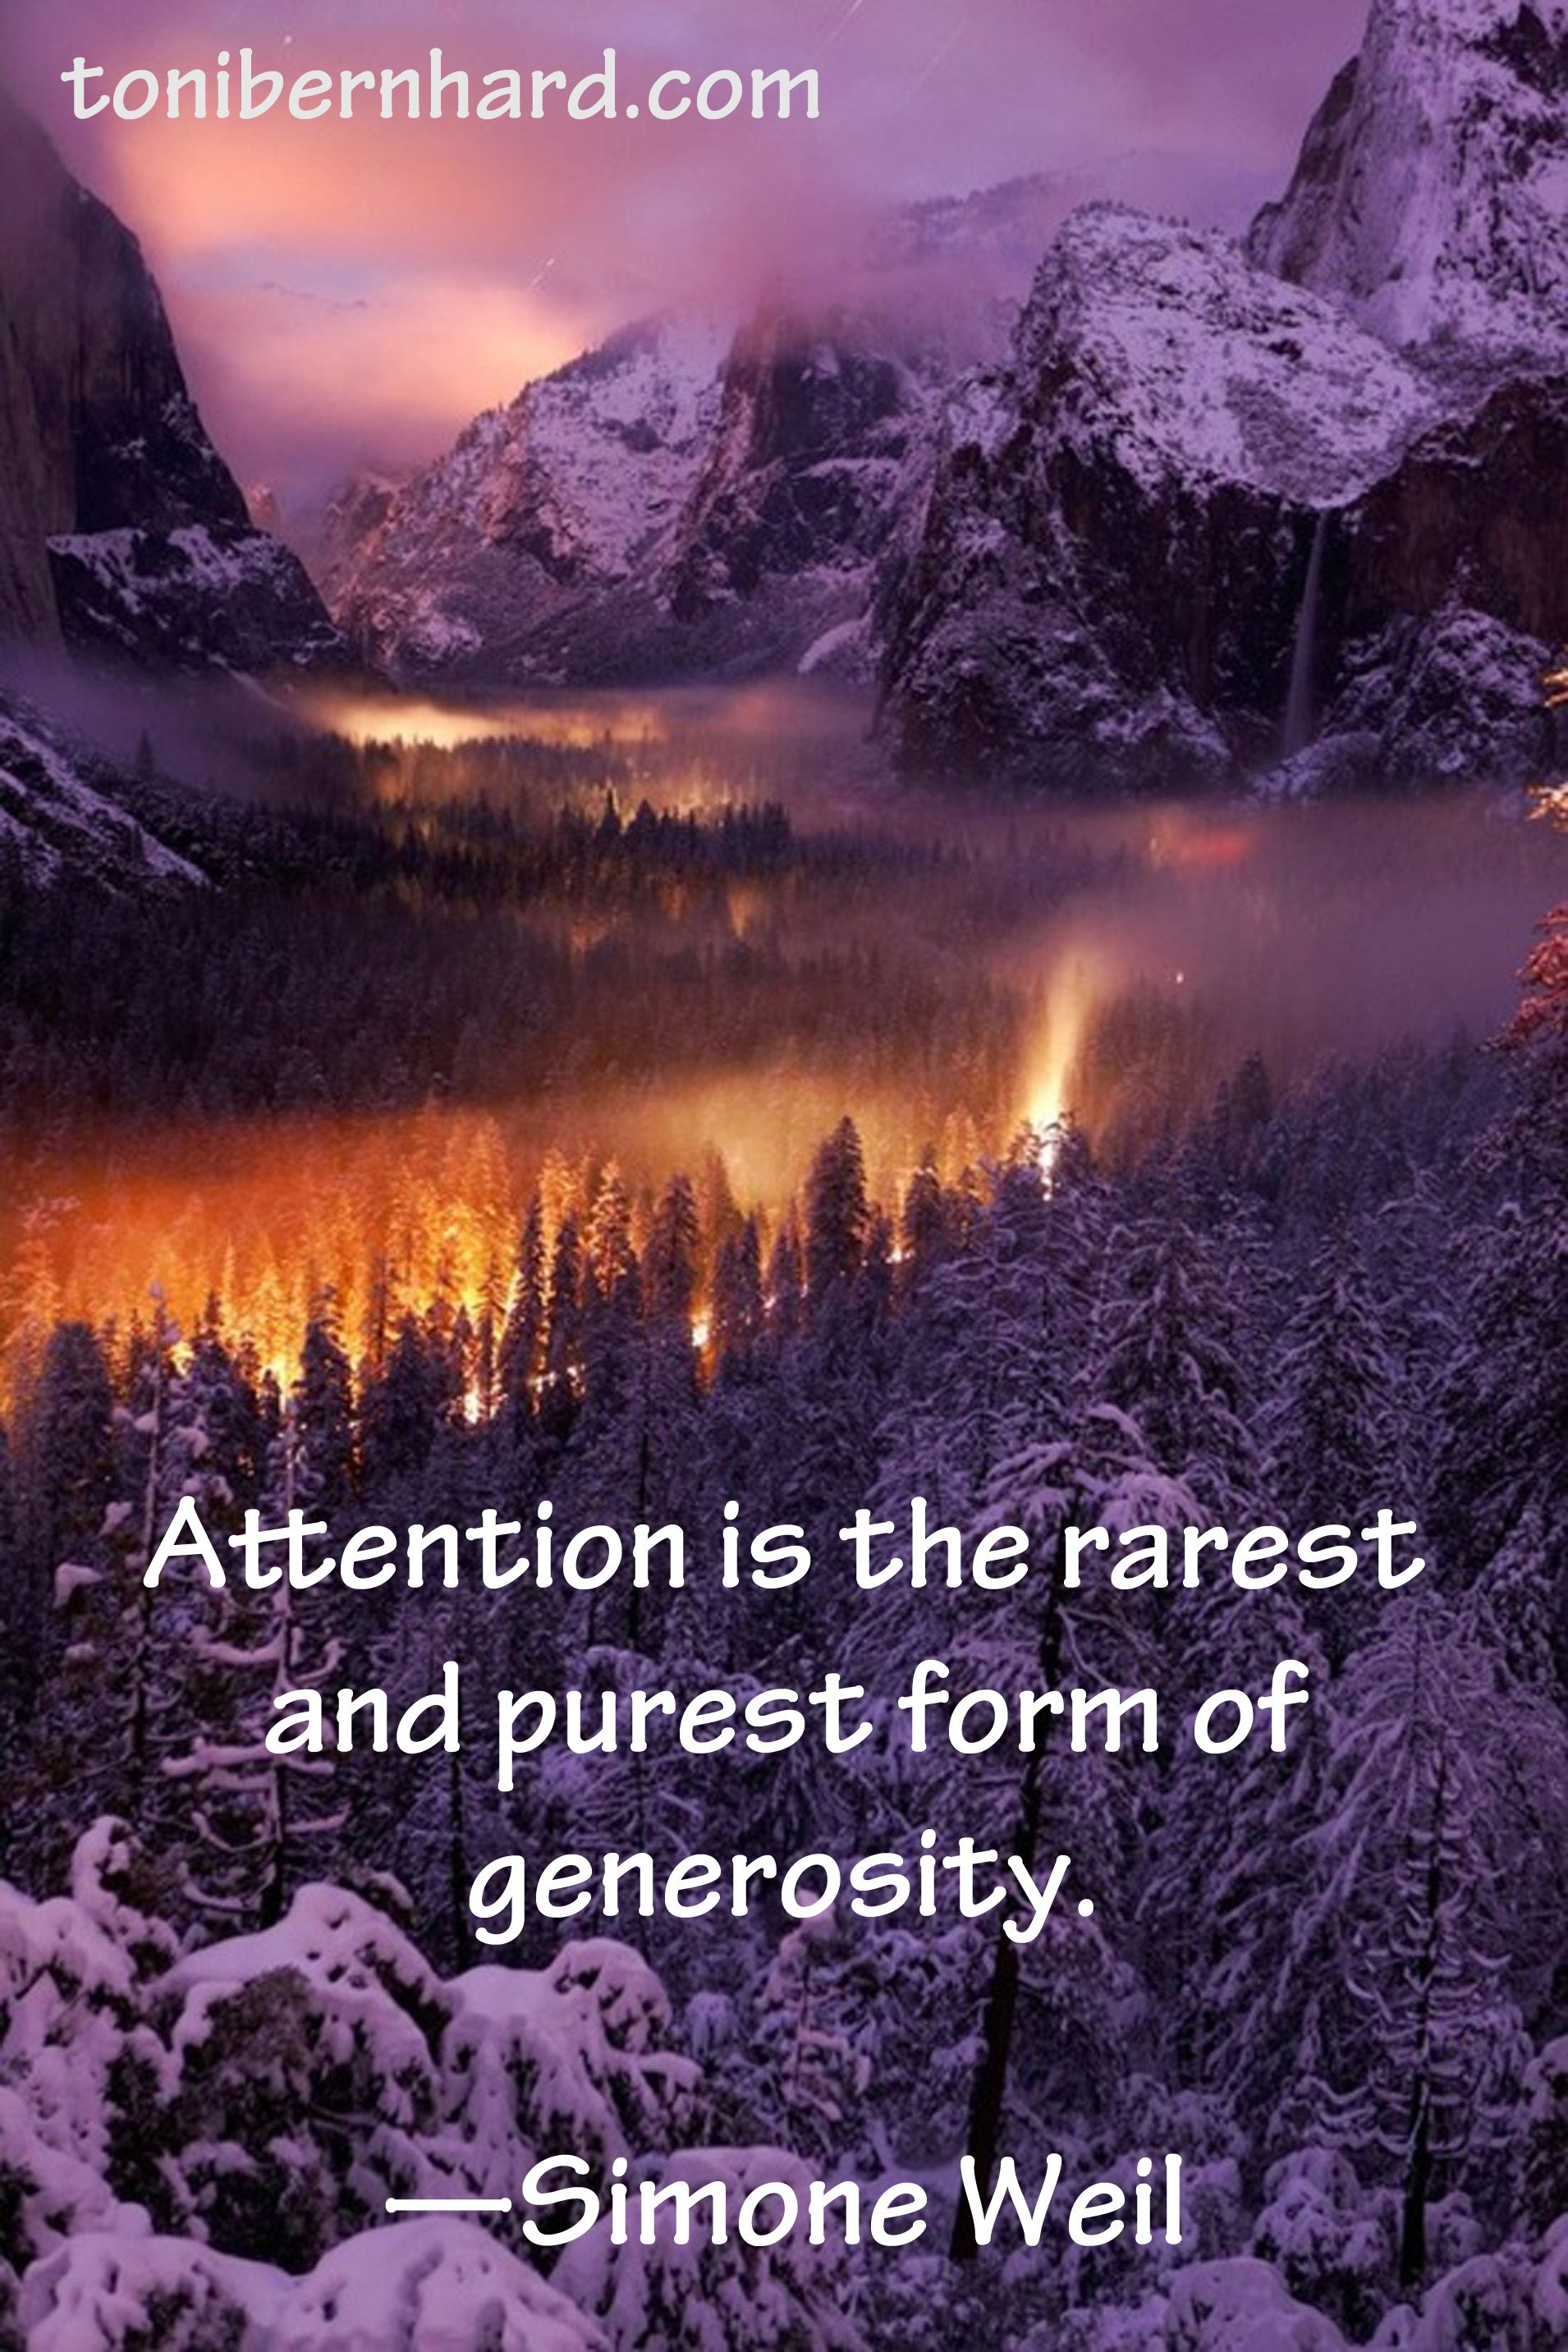 """Attention is the rarest and purest form of generosity."" French philosopher and Christian mystic Simone Weil"